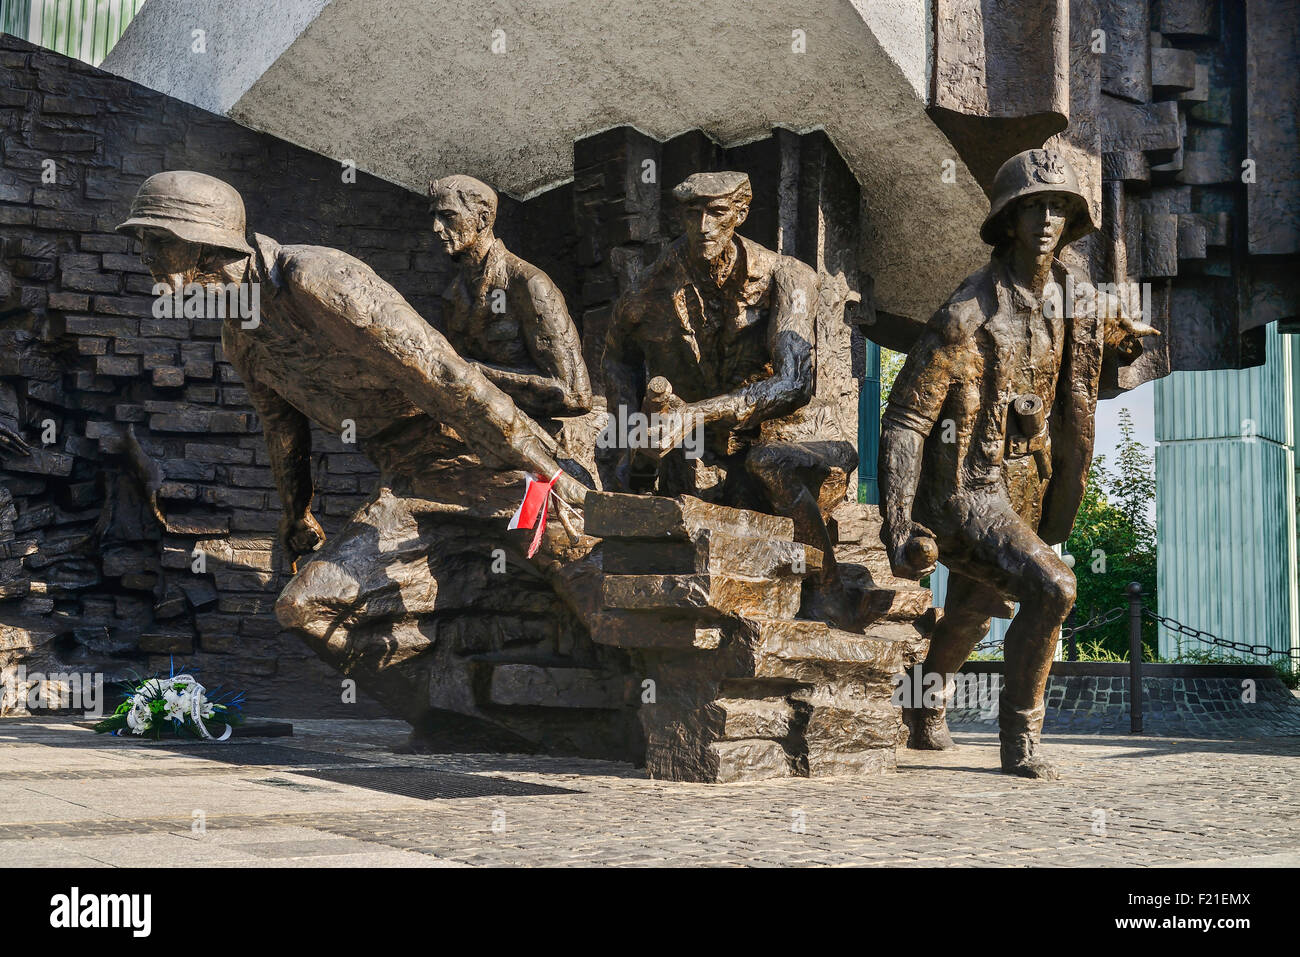 Poland Warsaw Monument to the Warsaw Uprising another section of the monument showing a group of Polish insurgents - Stock Image